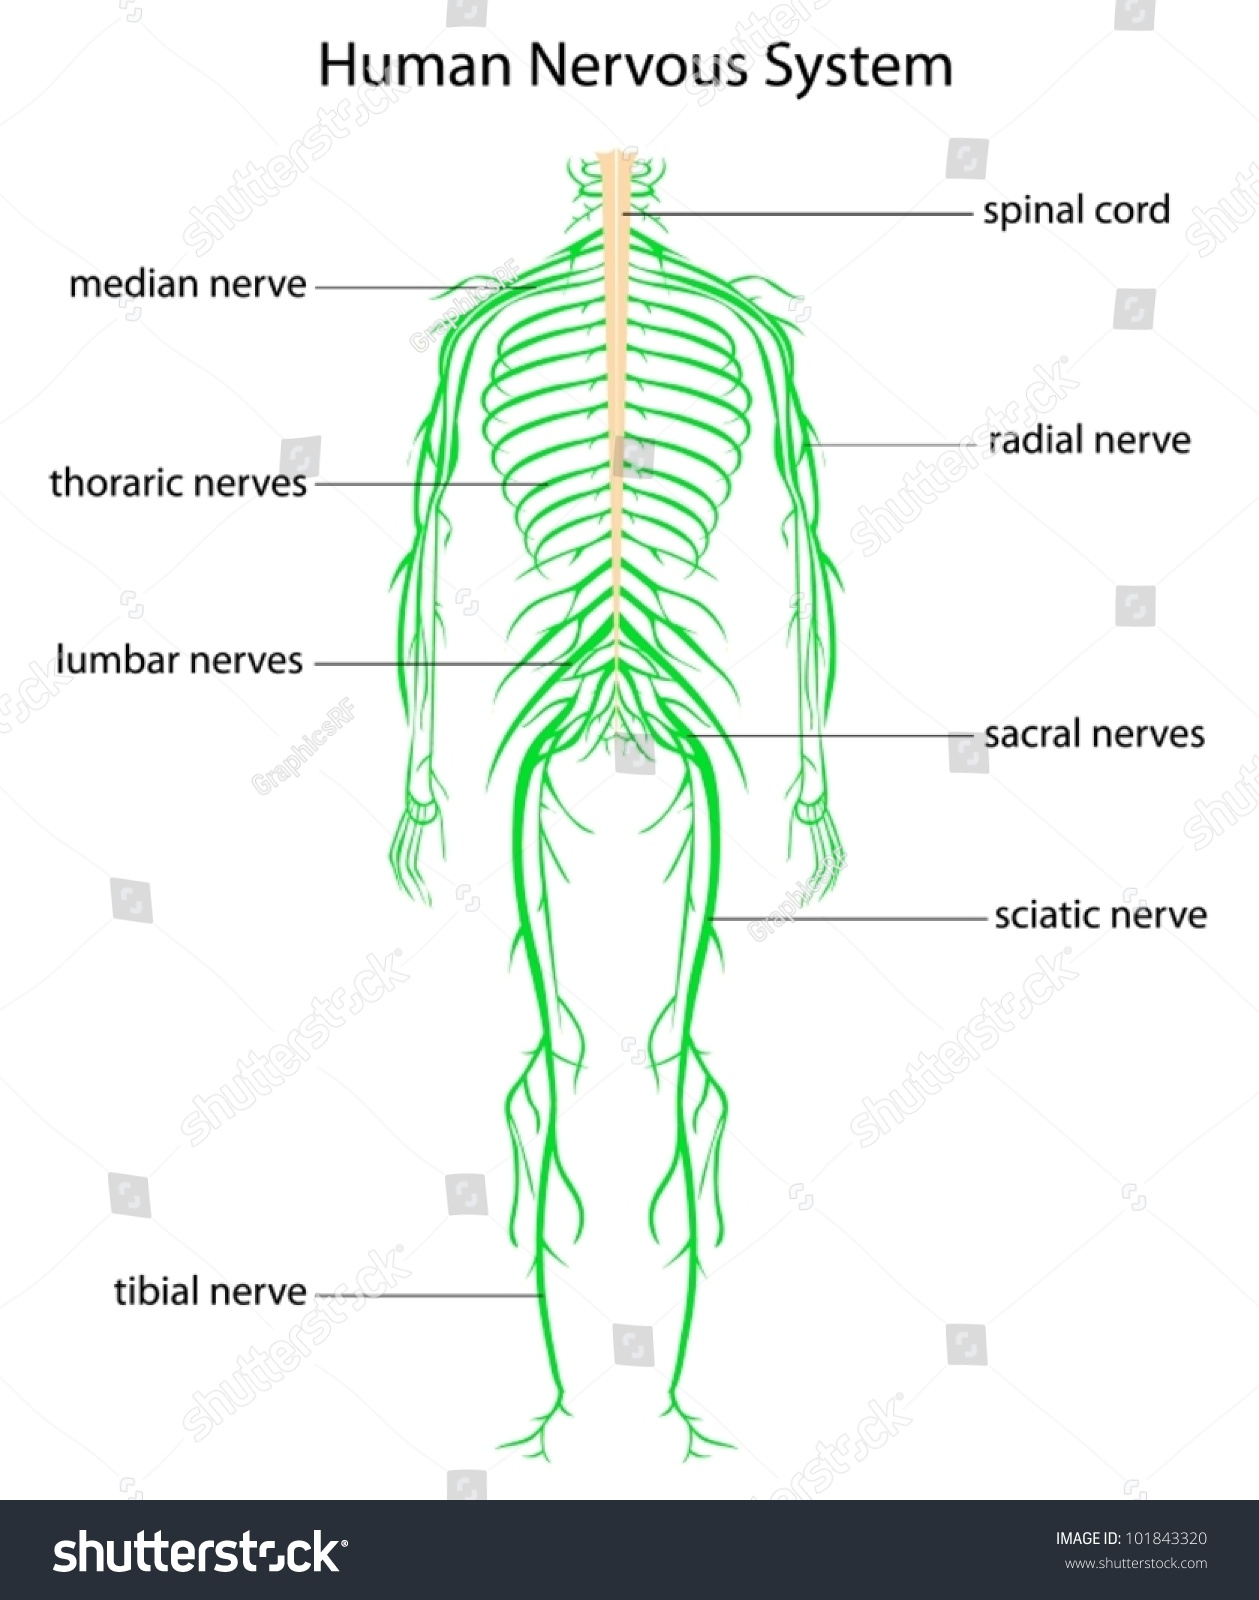 Worksheet Nervous System Worksheet Grass Fedjp Worksheet